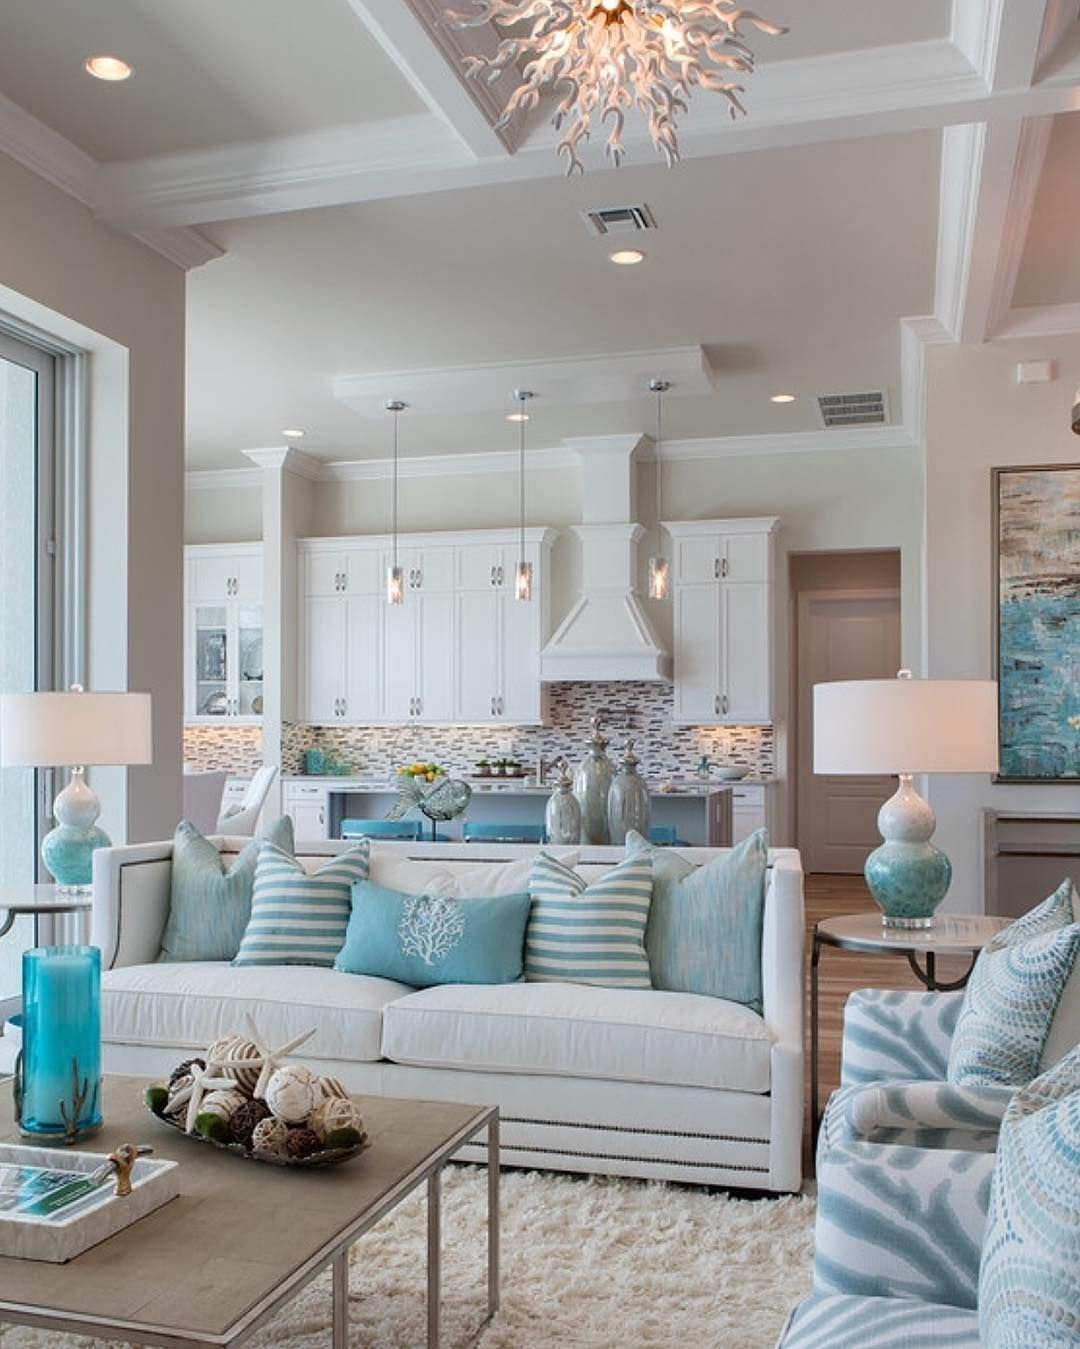 Beach Home Interior Design Ideas: Coastal Living By Robb & Stucky